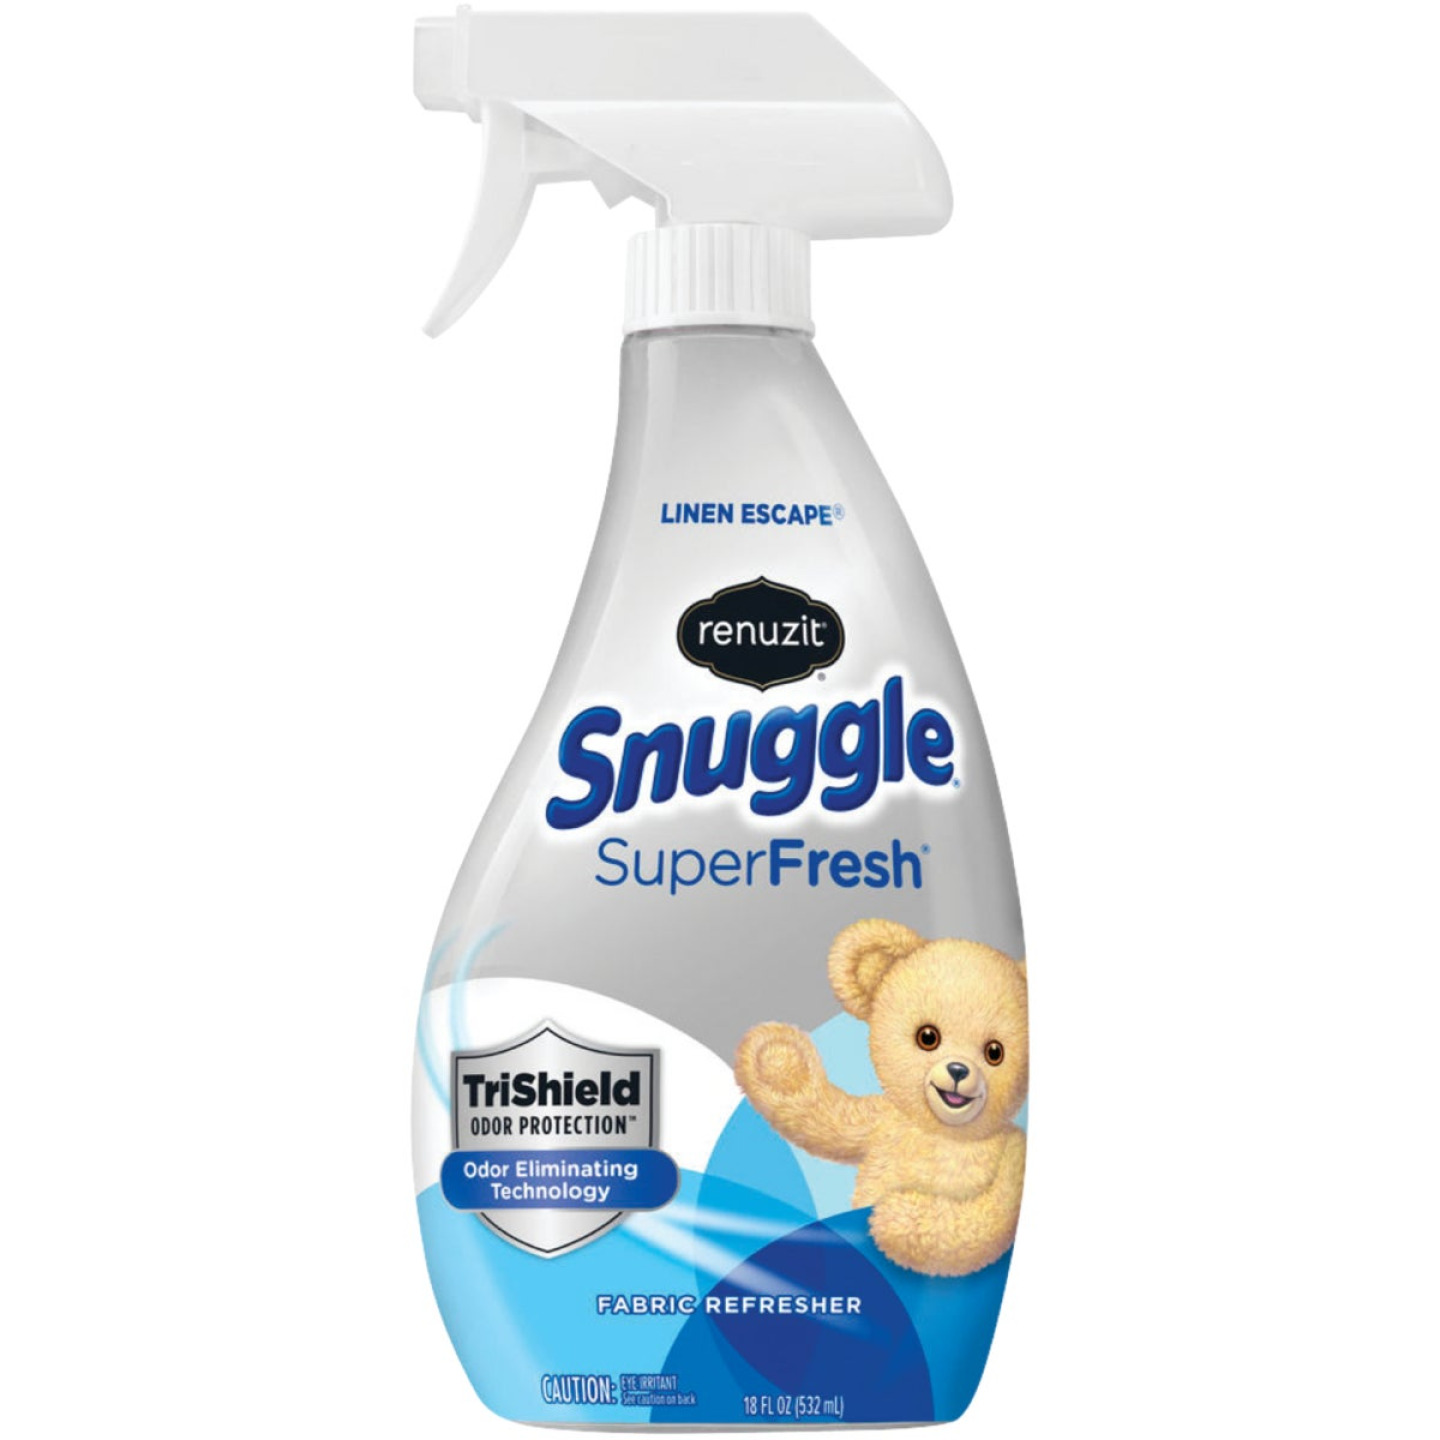 Renuzit Snuggle SuperFresh 18 Oz. Linen Escape Fabric Refresher Spray TriShield Odor Protection Image 1